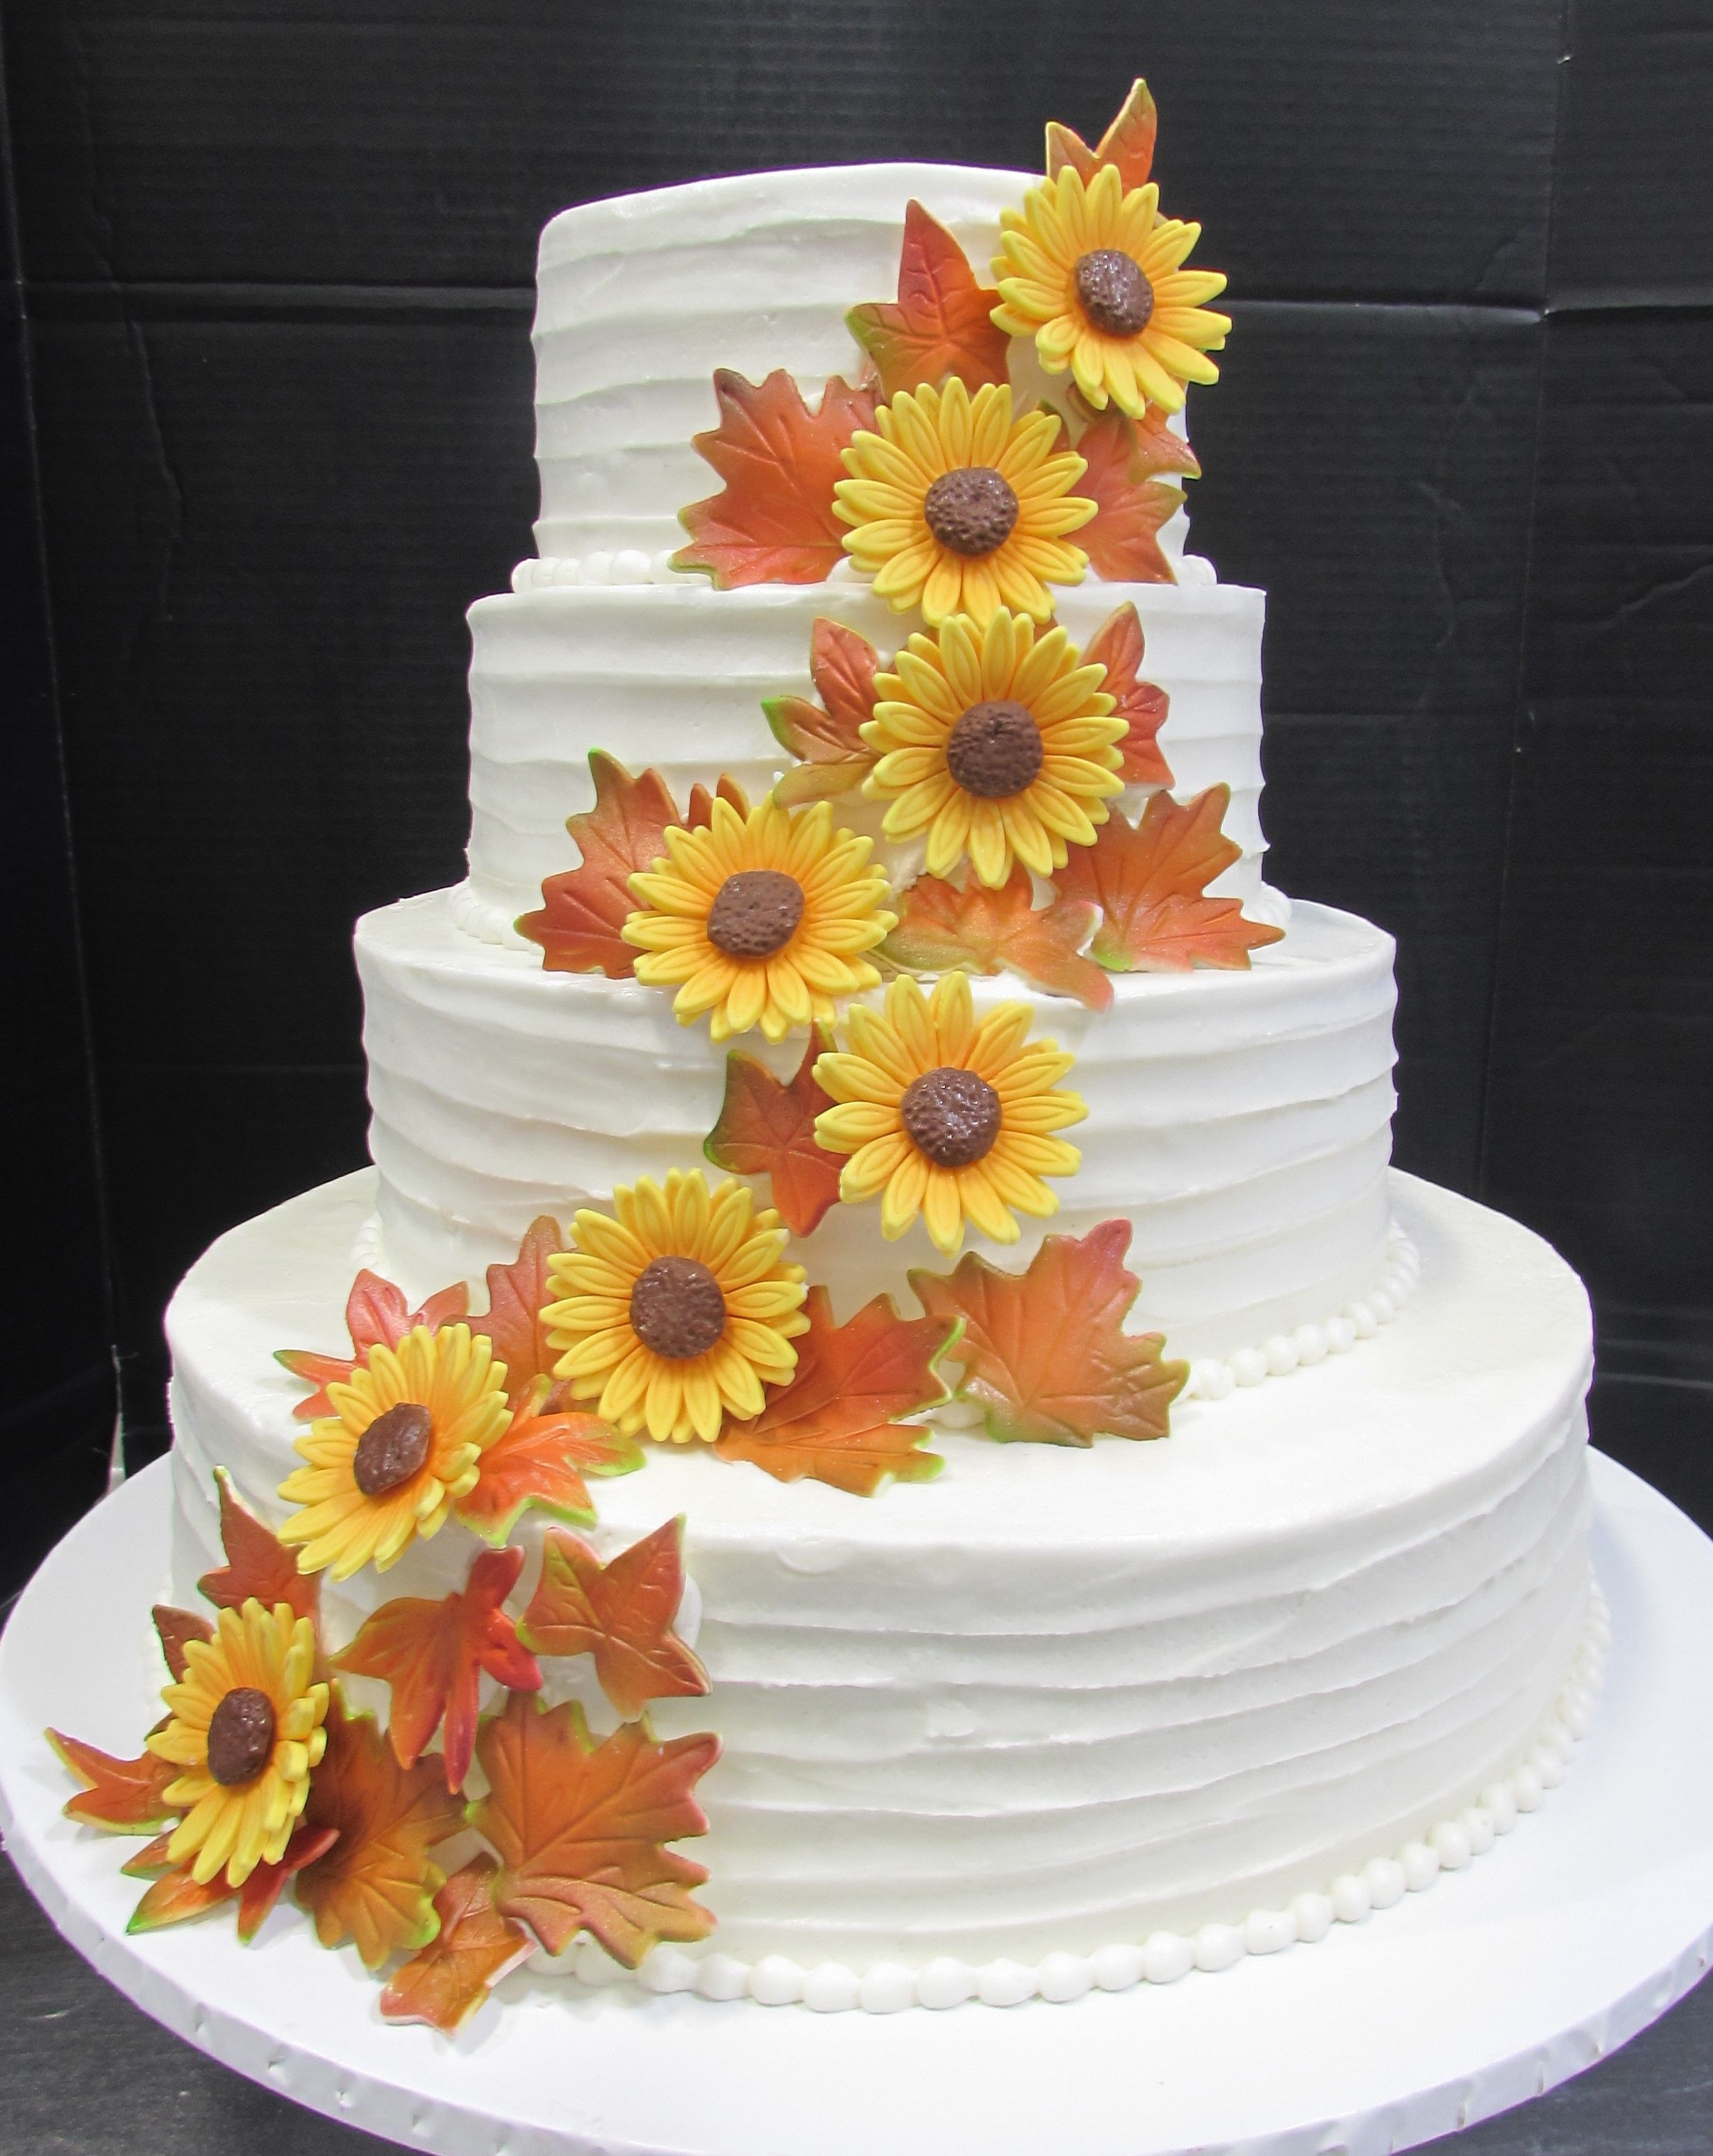 Pretty Sunflowers And Fall Leaves Cascading Down A Tiered Cake In 2020 Traditional Wedding Cakes Wedding Cakes Leaves Fall Wedding Cakes